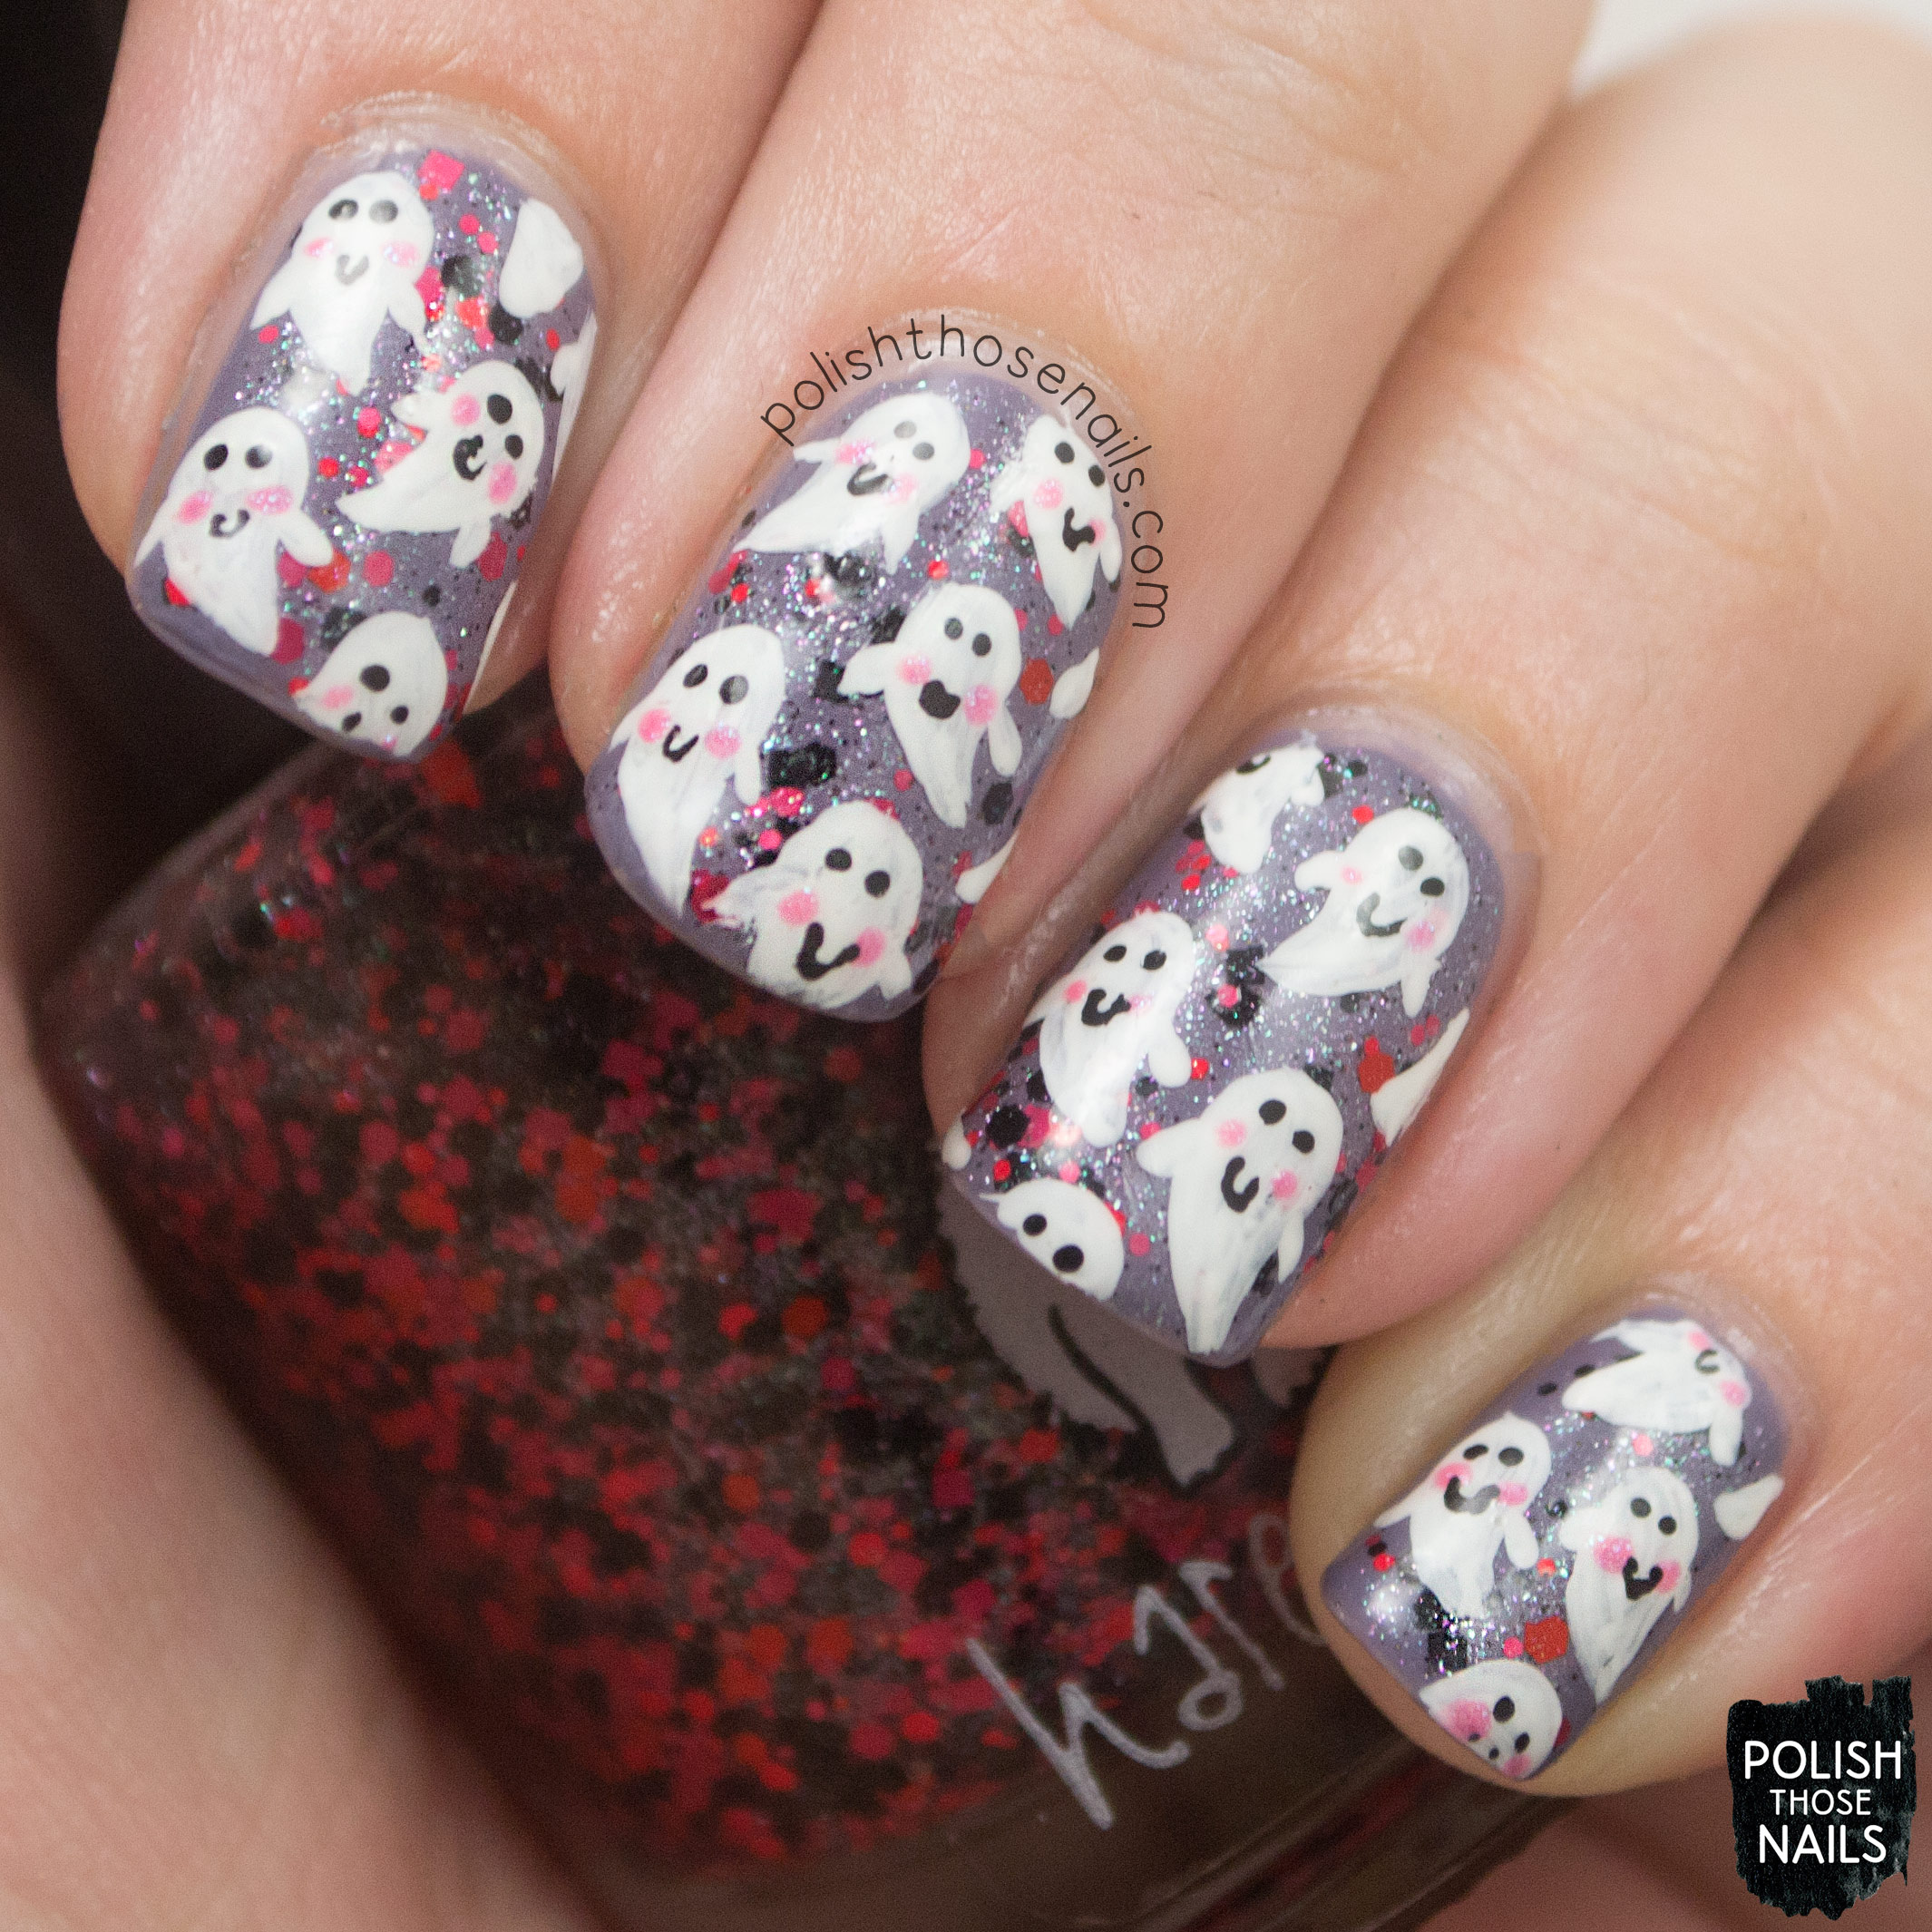 Inspired By The Supernatural Polish Those Nails